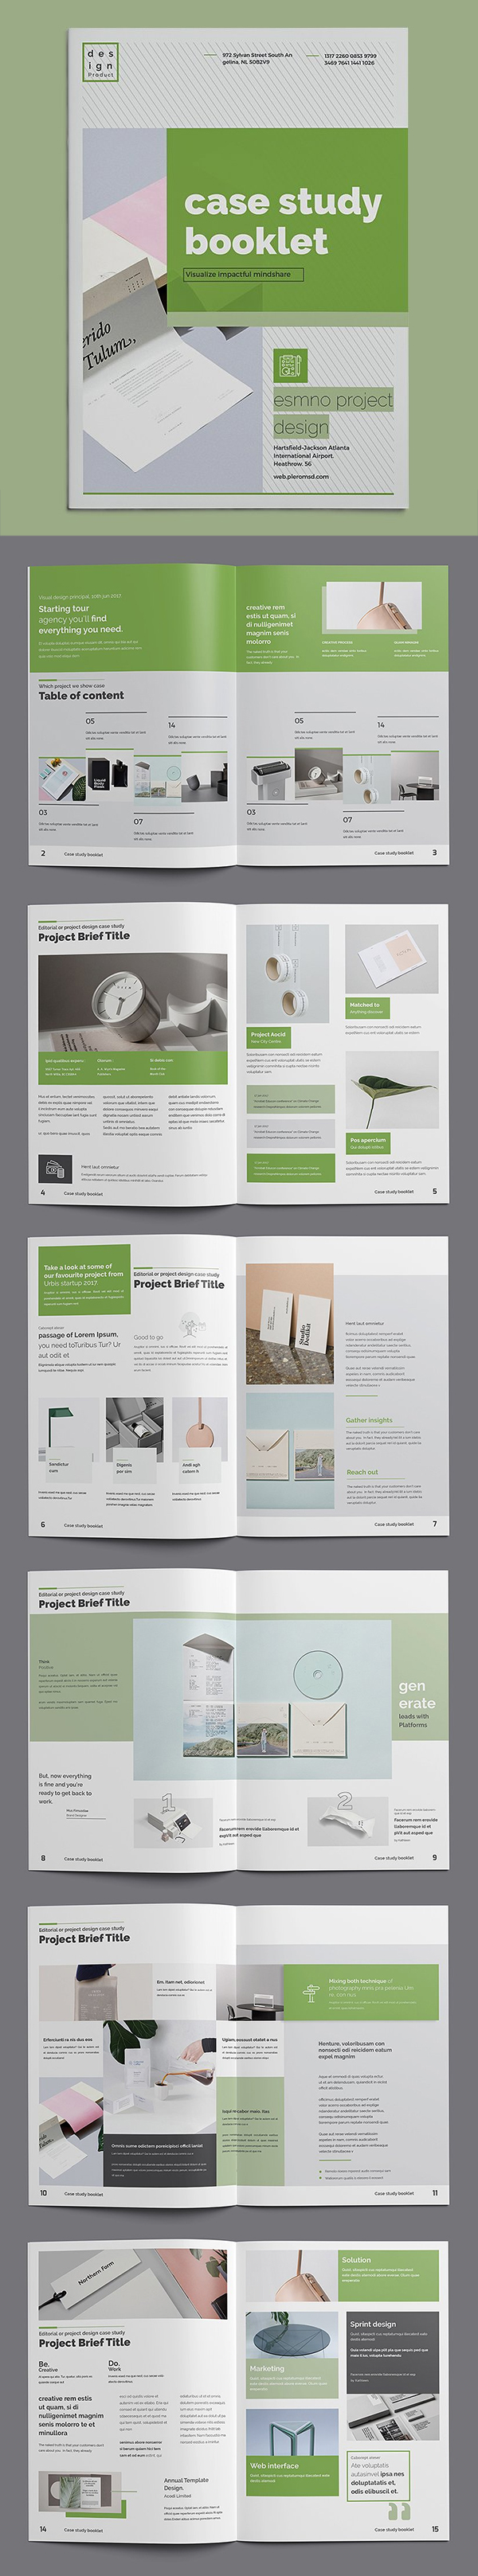 100 Professional Corporate Brochure Templates - 66